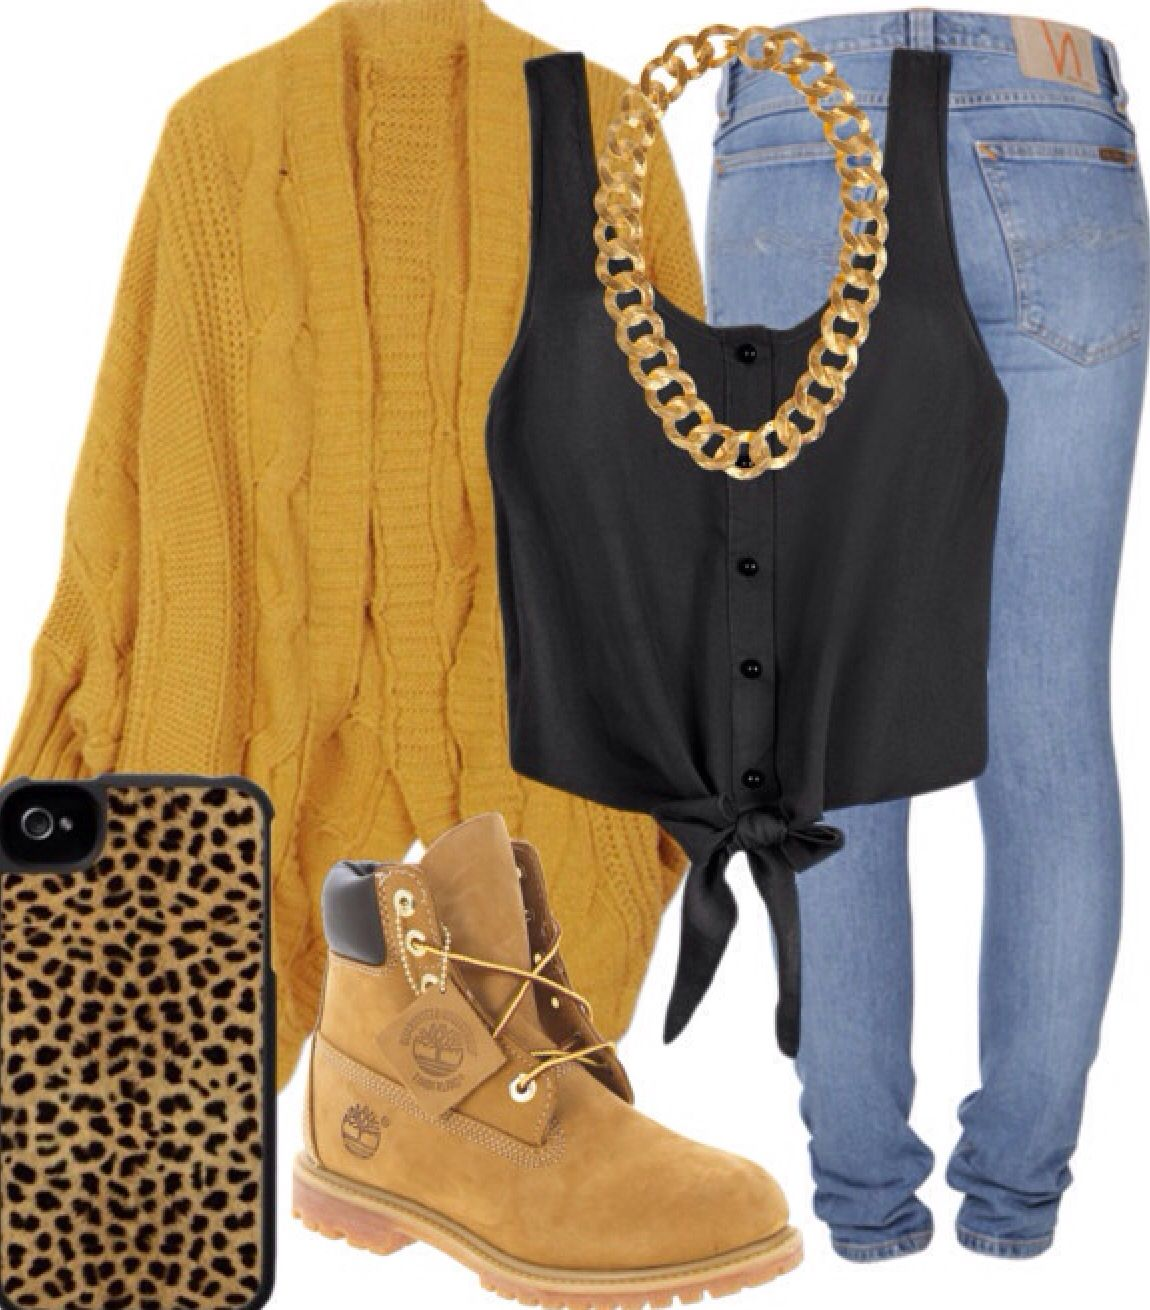 Timberlands outfit - Timberlands Outfit Clothes Pinterest Discover More Ideas